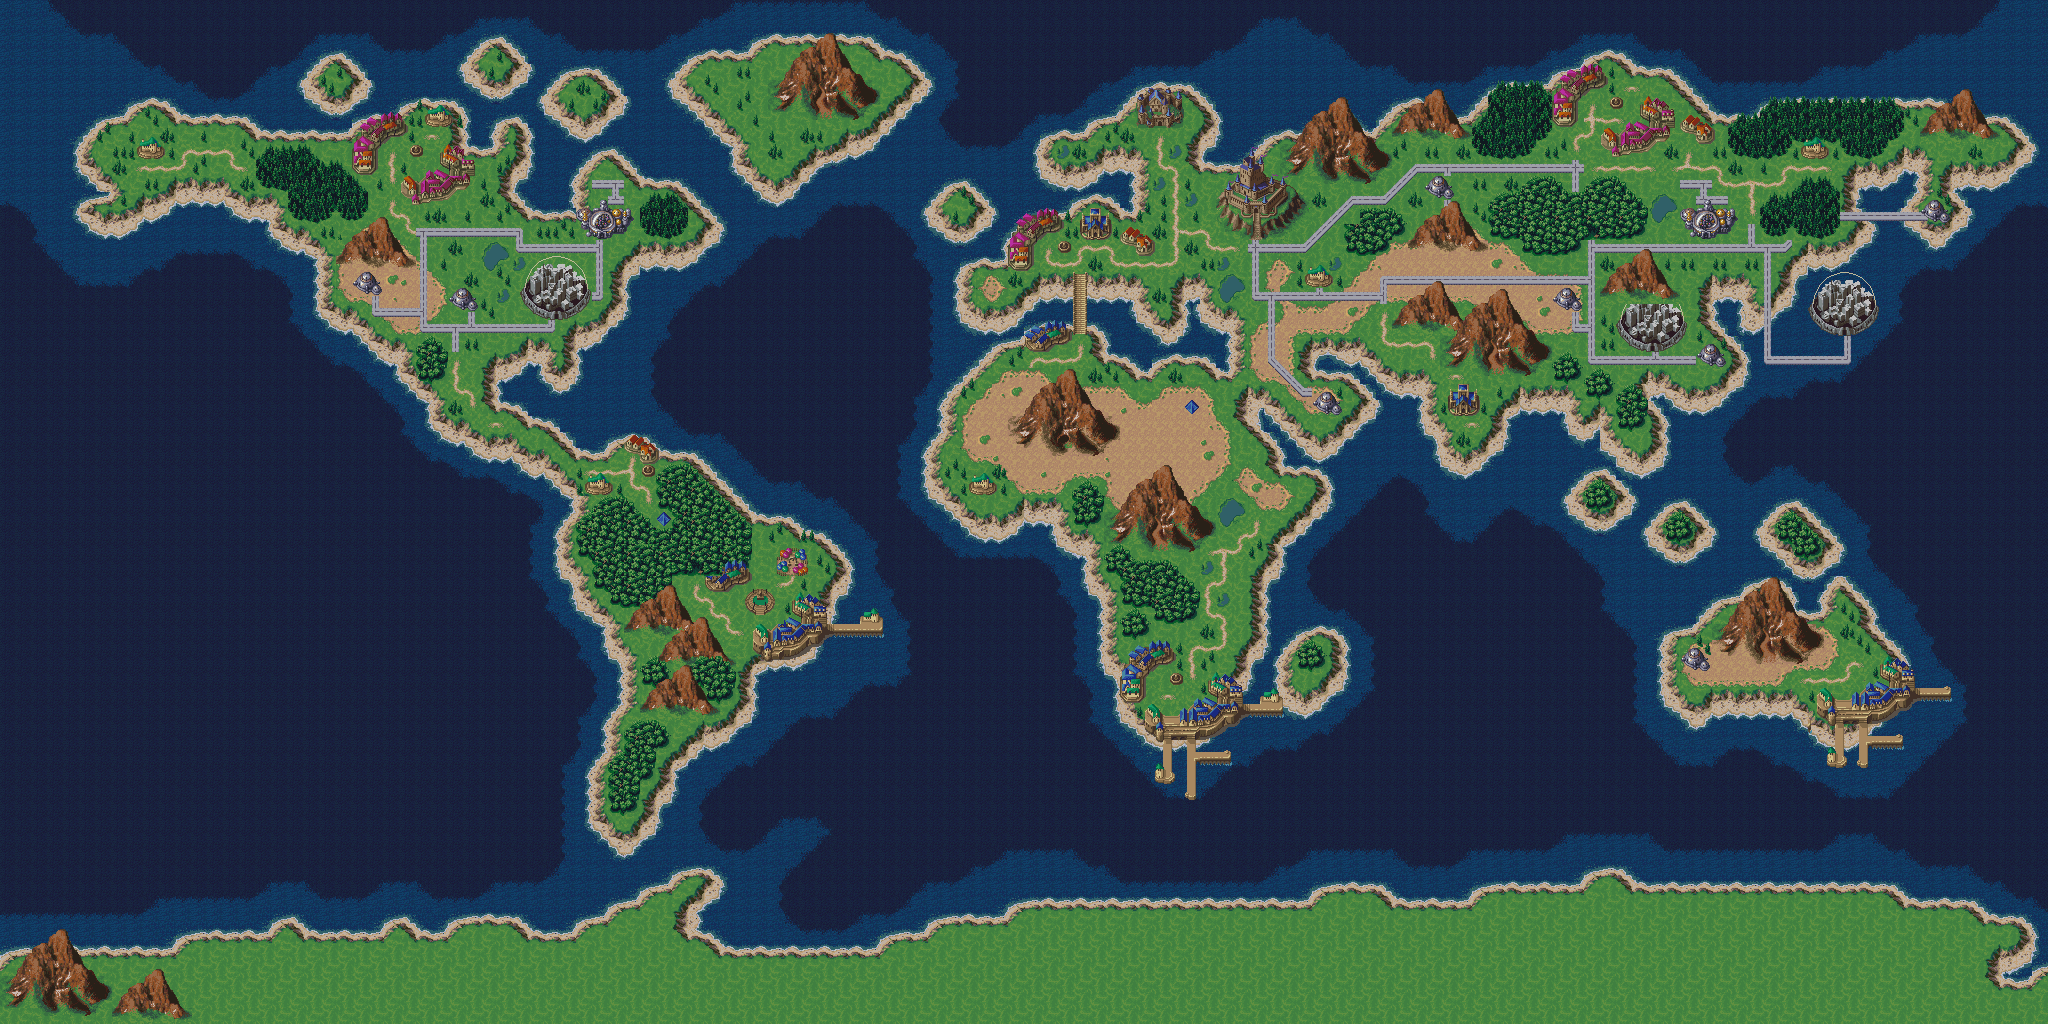 Chrono Trigger World Map Earth map in chrono trigger style by Dr Shellos (With images